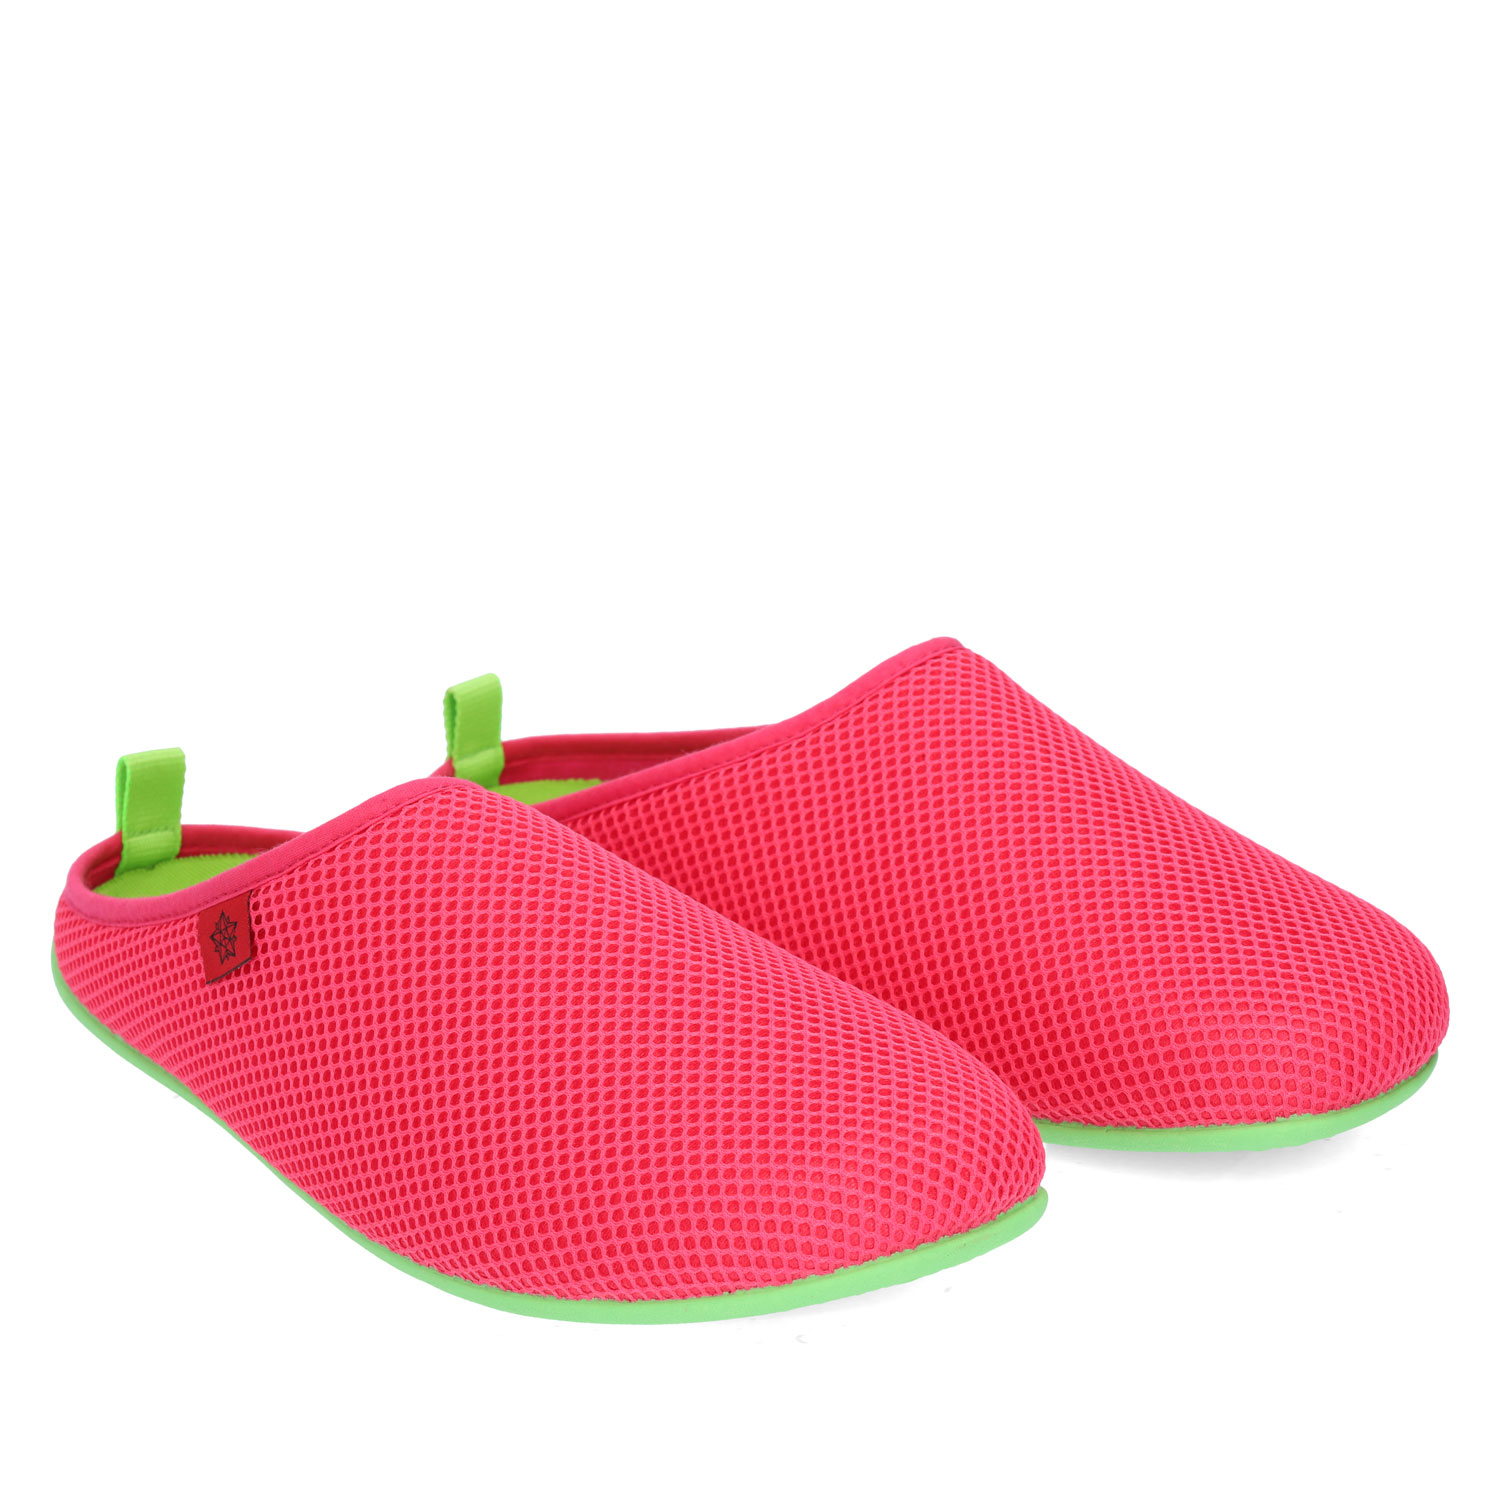 Spring/ Summer Unisex Slippers in Fuchsia mesh with Green outsole